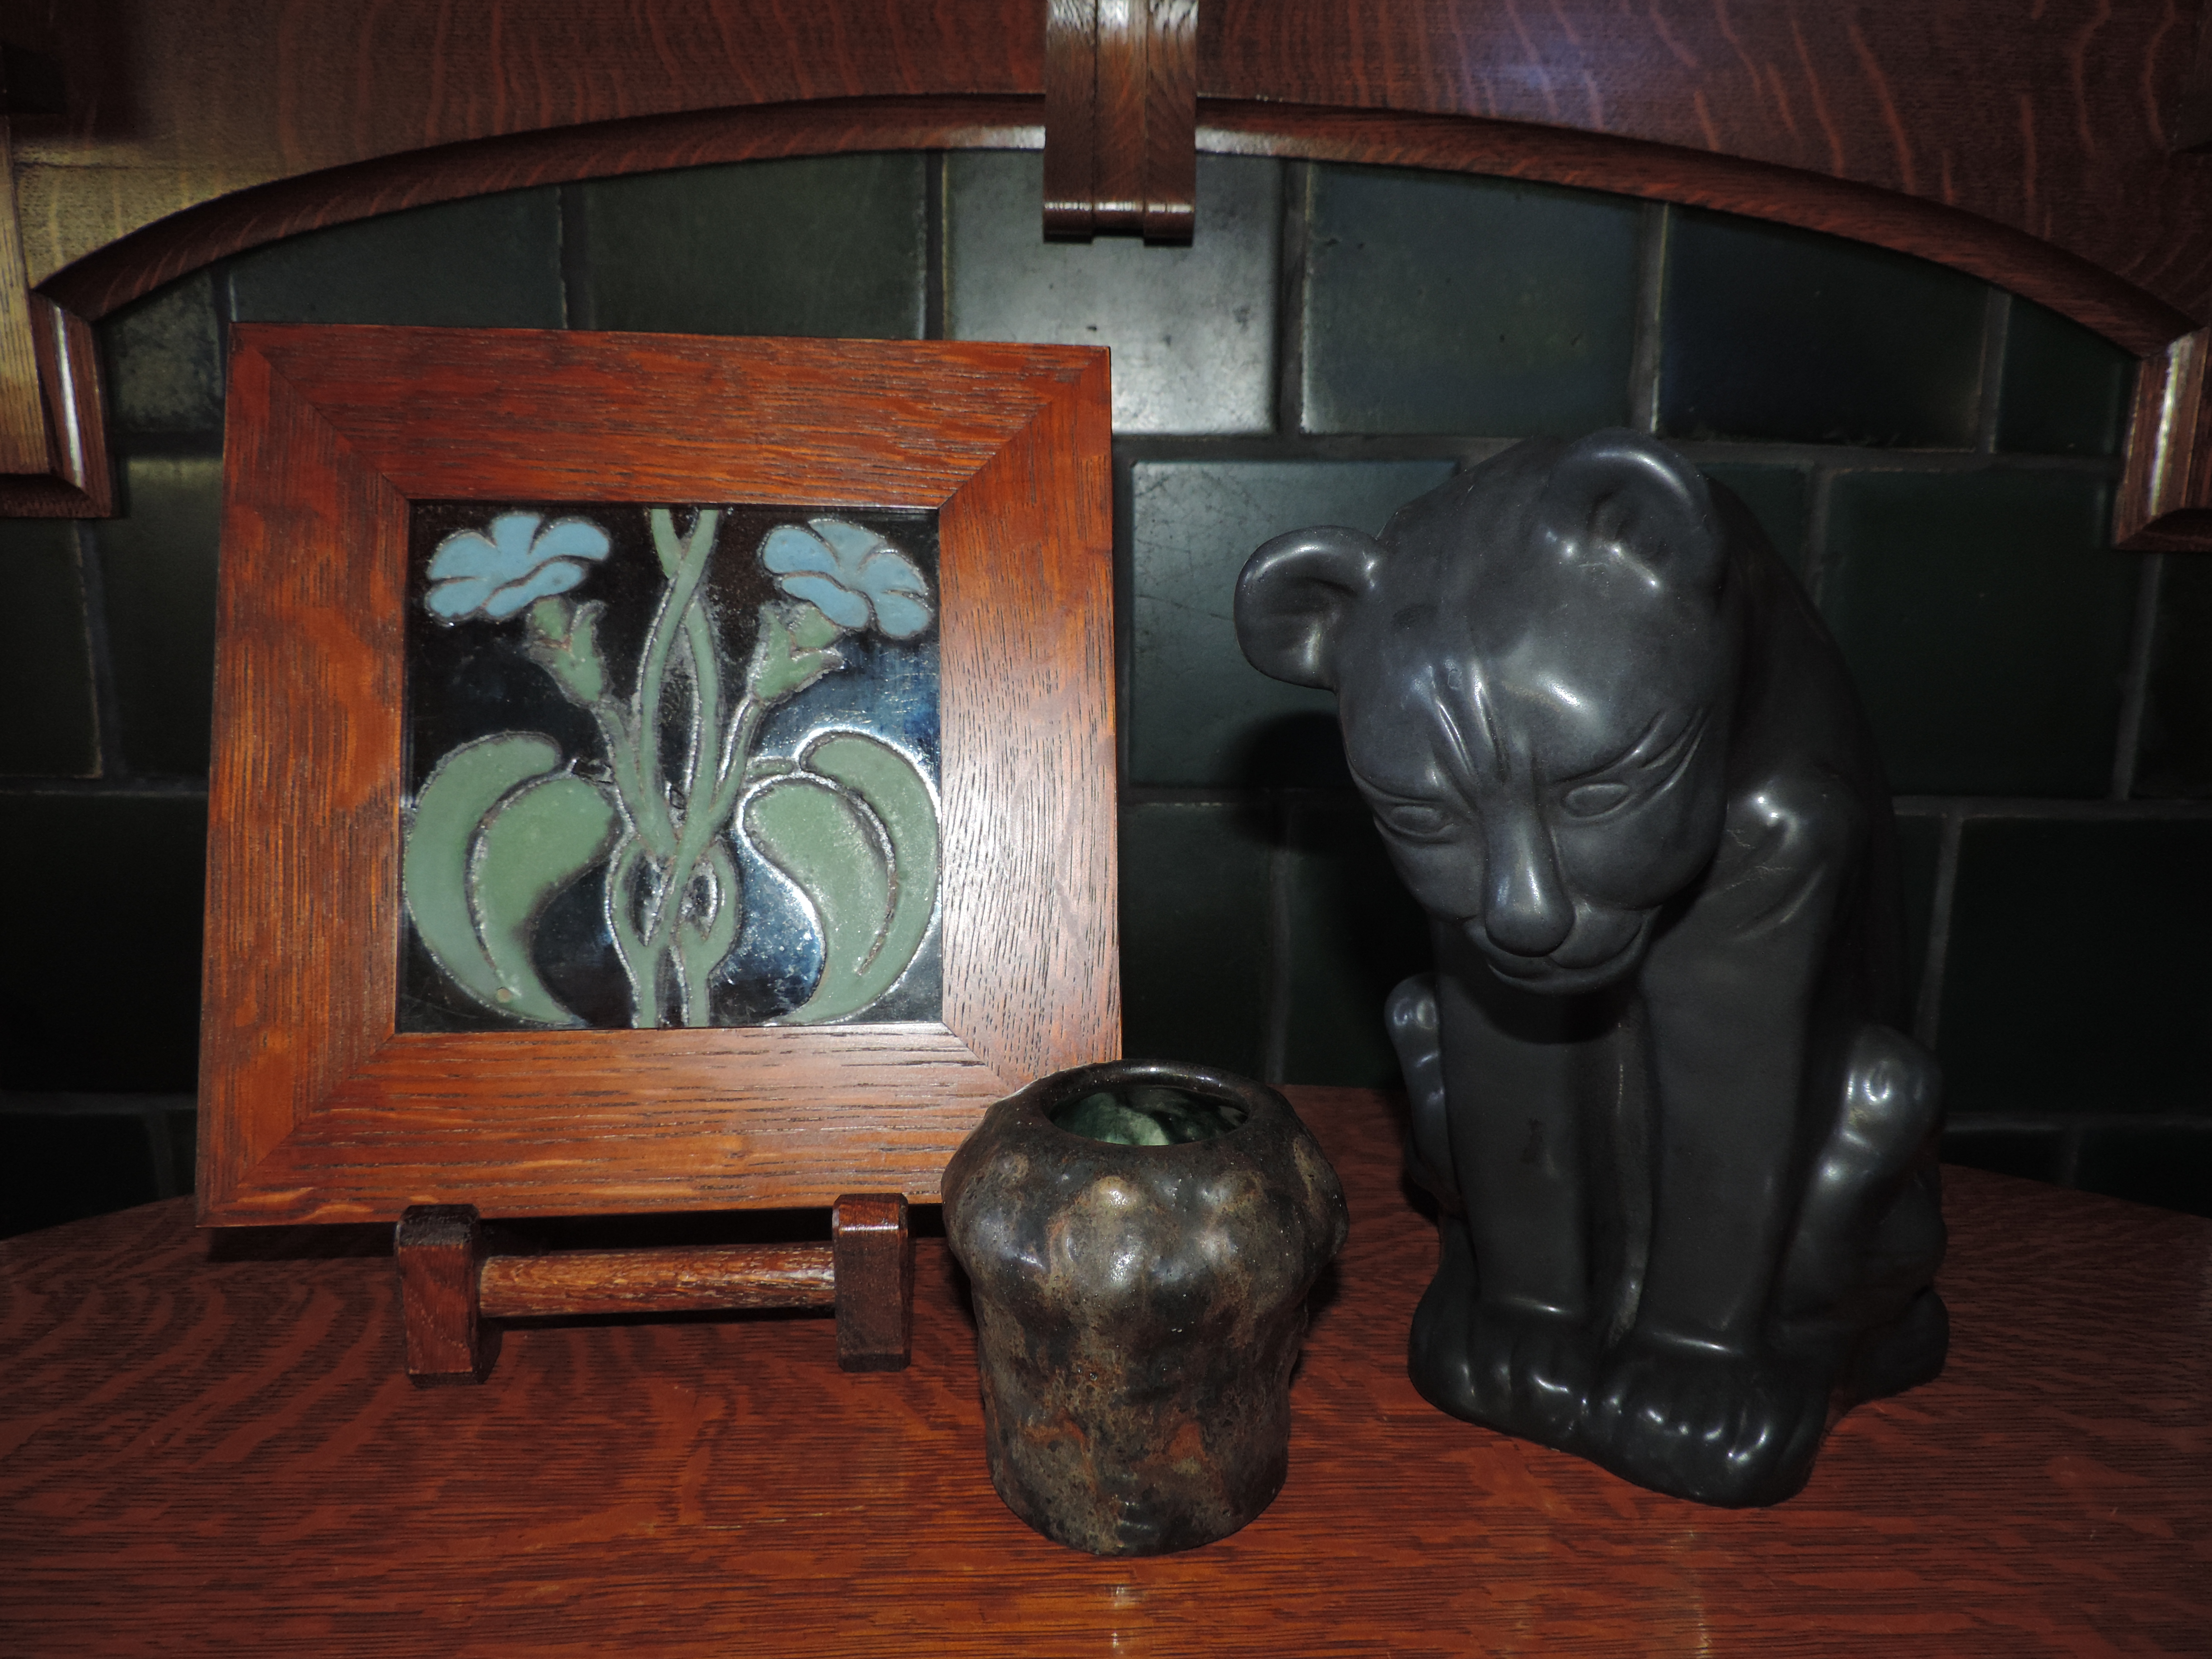 Glazes van briggle notes artus developed and created pieces in several shades of black the center piece is marked as an experimental in black brown glaze and dated 1902 reviewsmspy